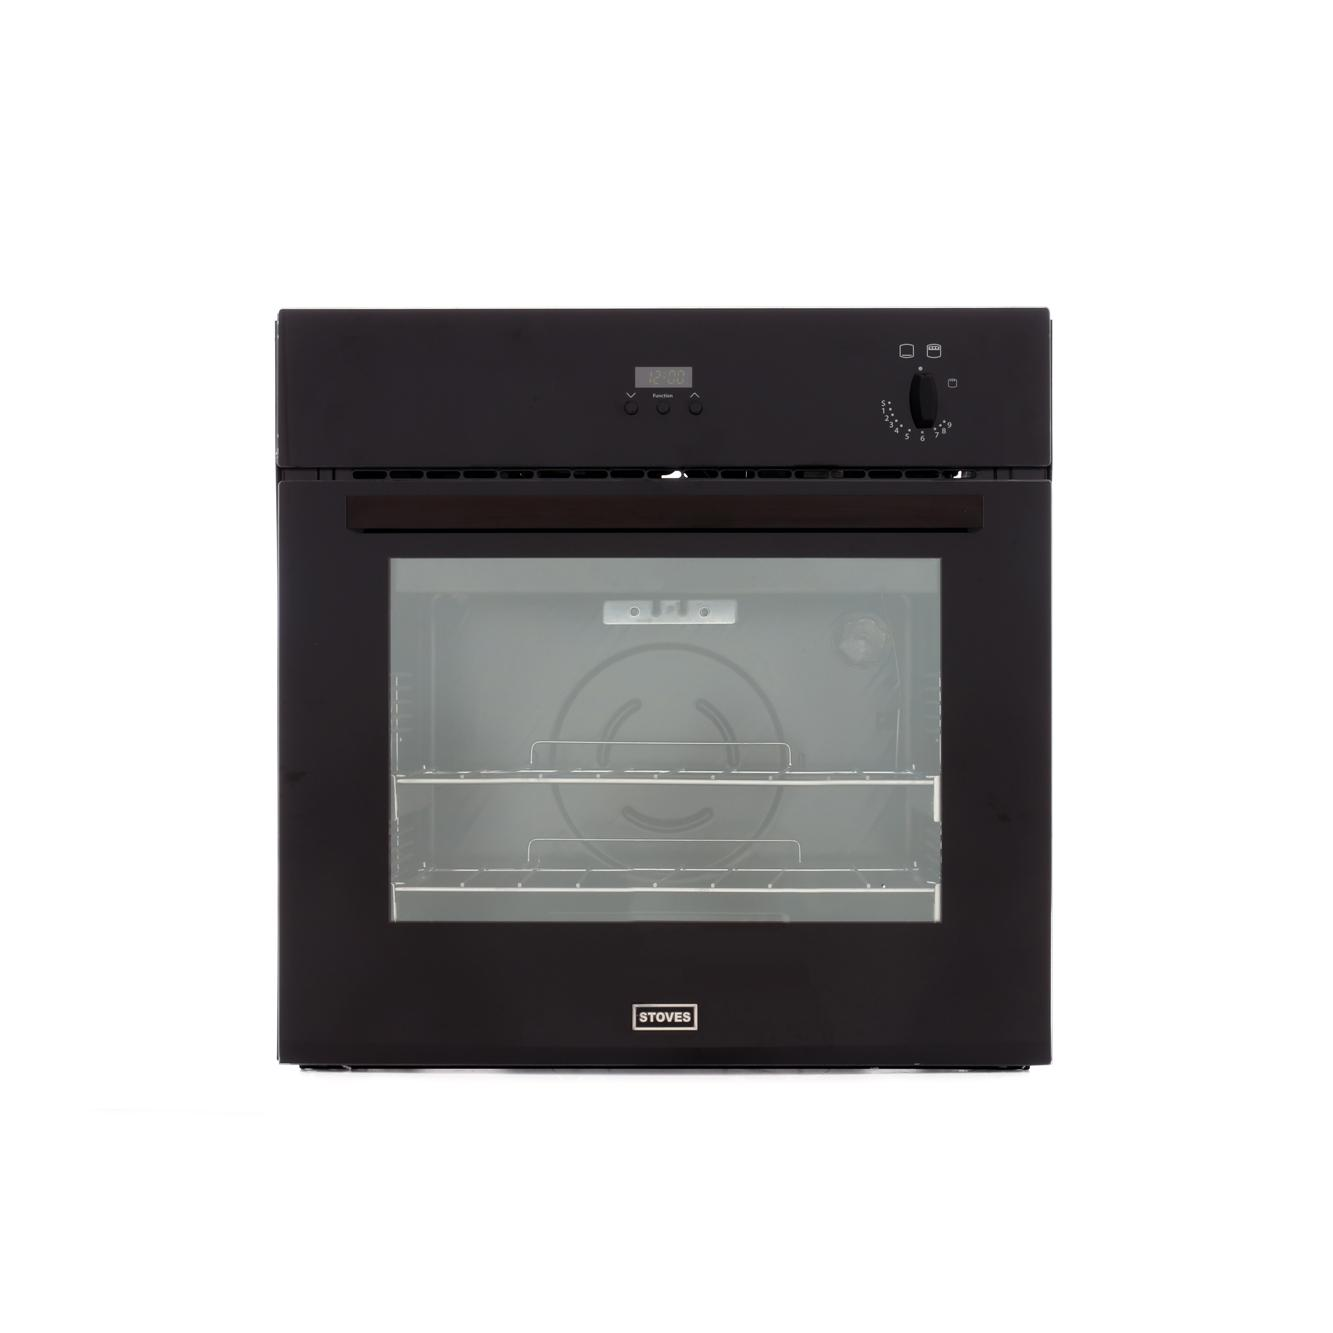 Stoves SGB600PS Black Single Built In Gas Oven